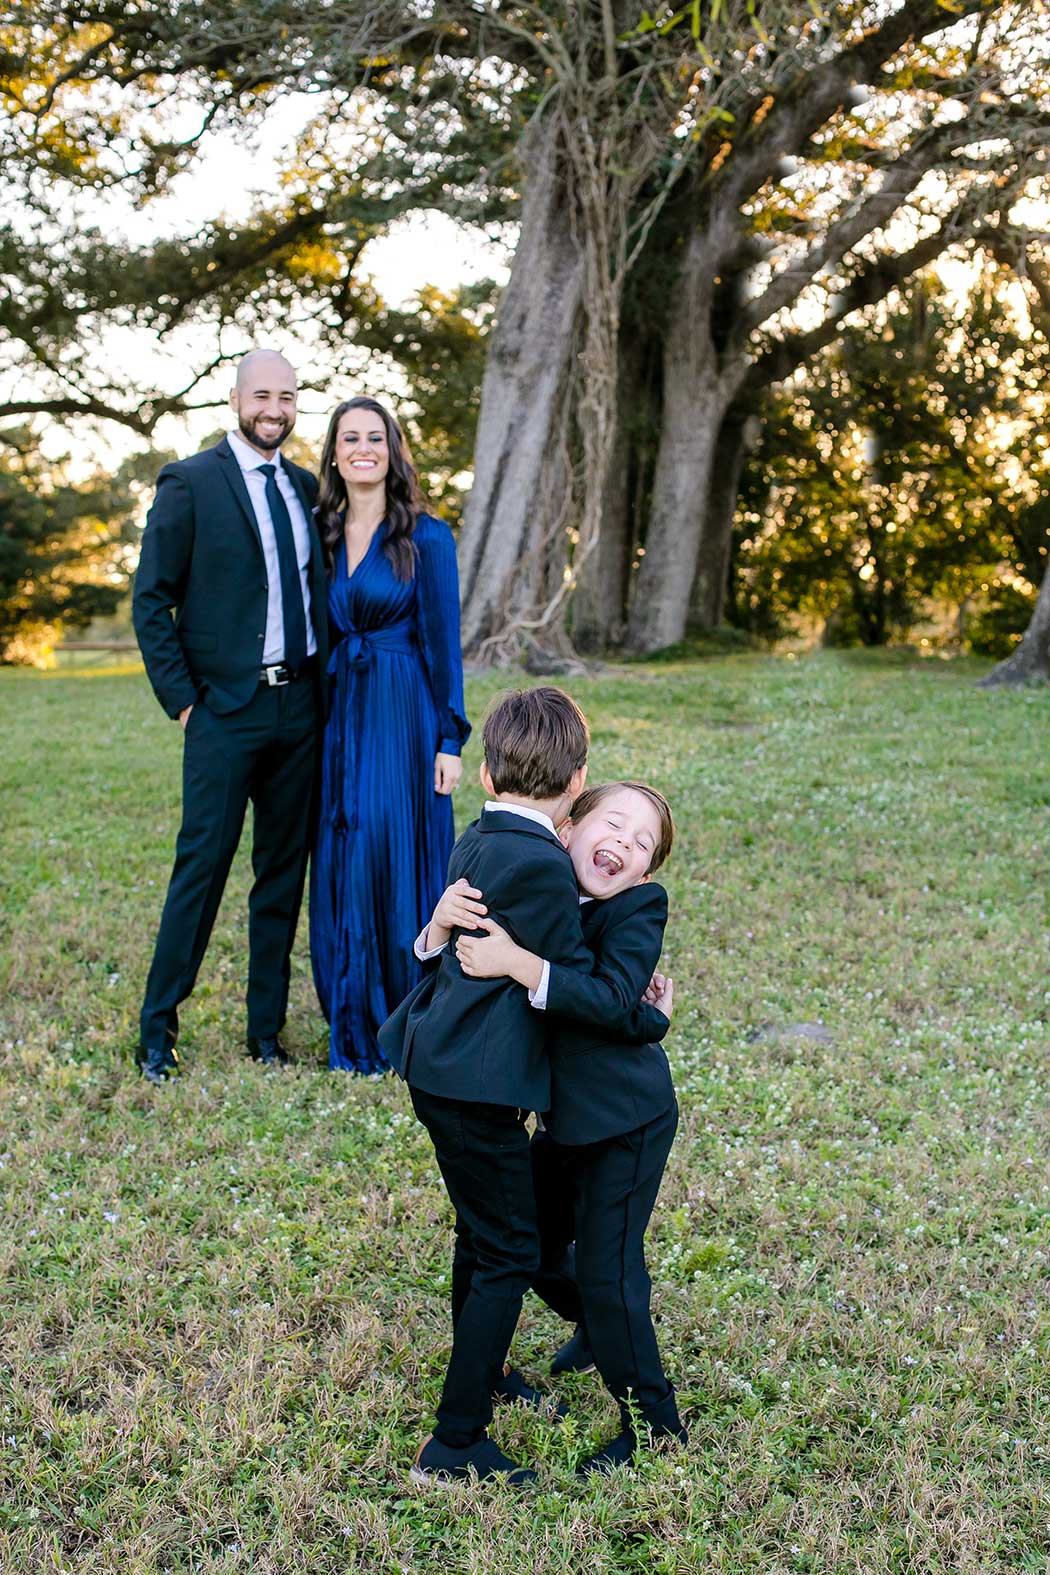 fun family pictures | fun pose for elegrant family photographs | robbins preserve family photography | family photographer south florida